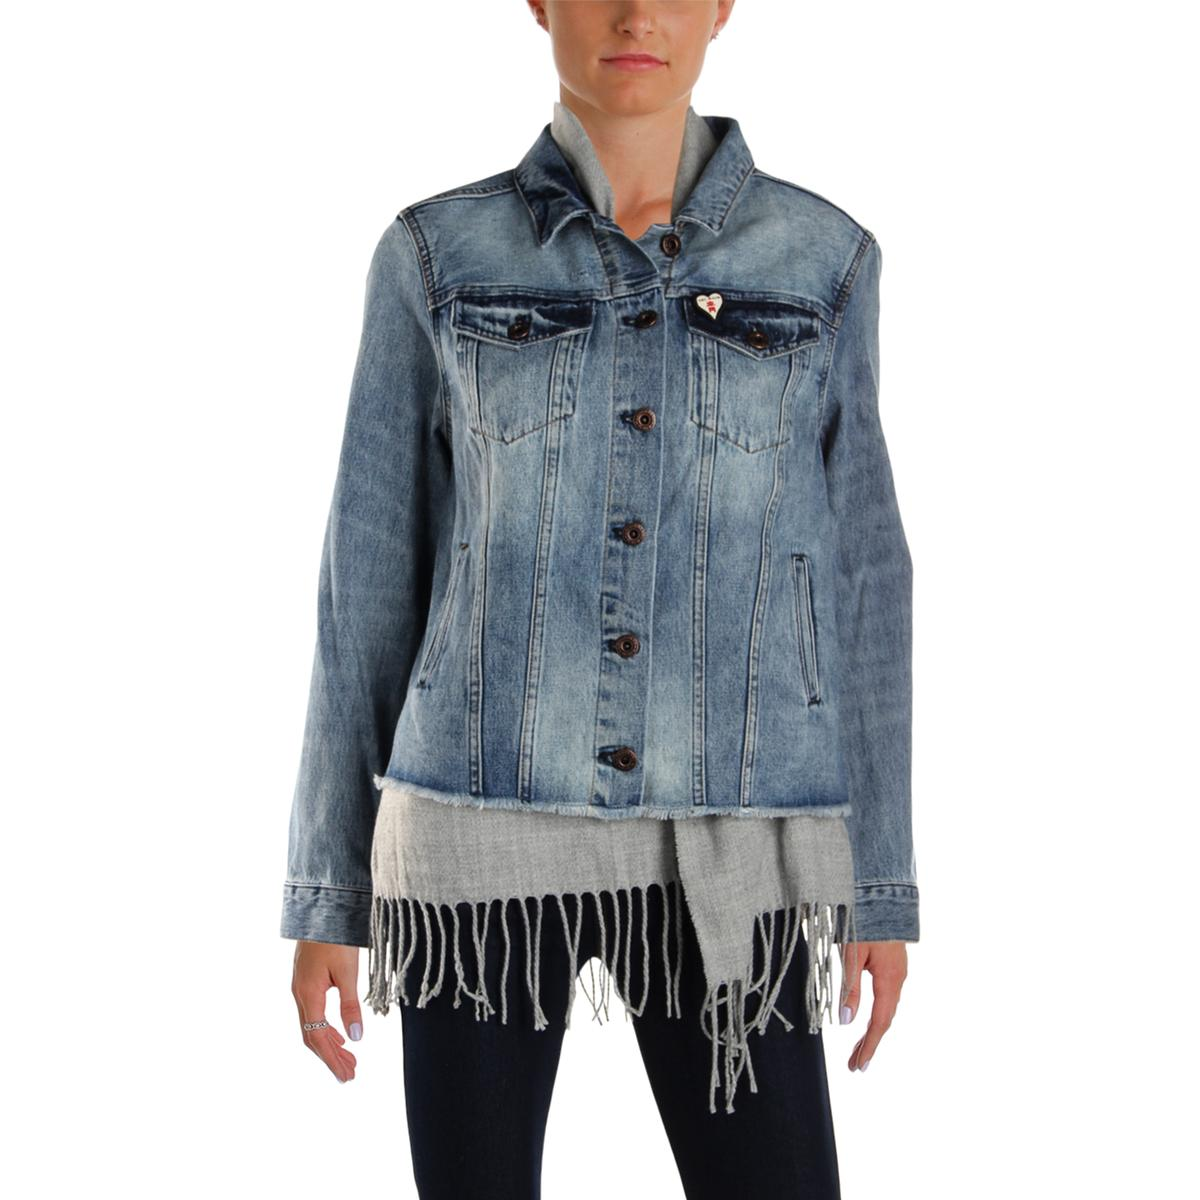 Jean Scotch Soda Scotch Soda Womens Blue All Season Denim Jean Jacket Outerwear L